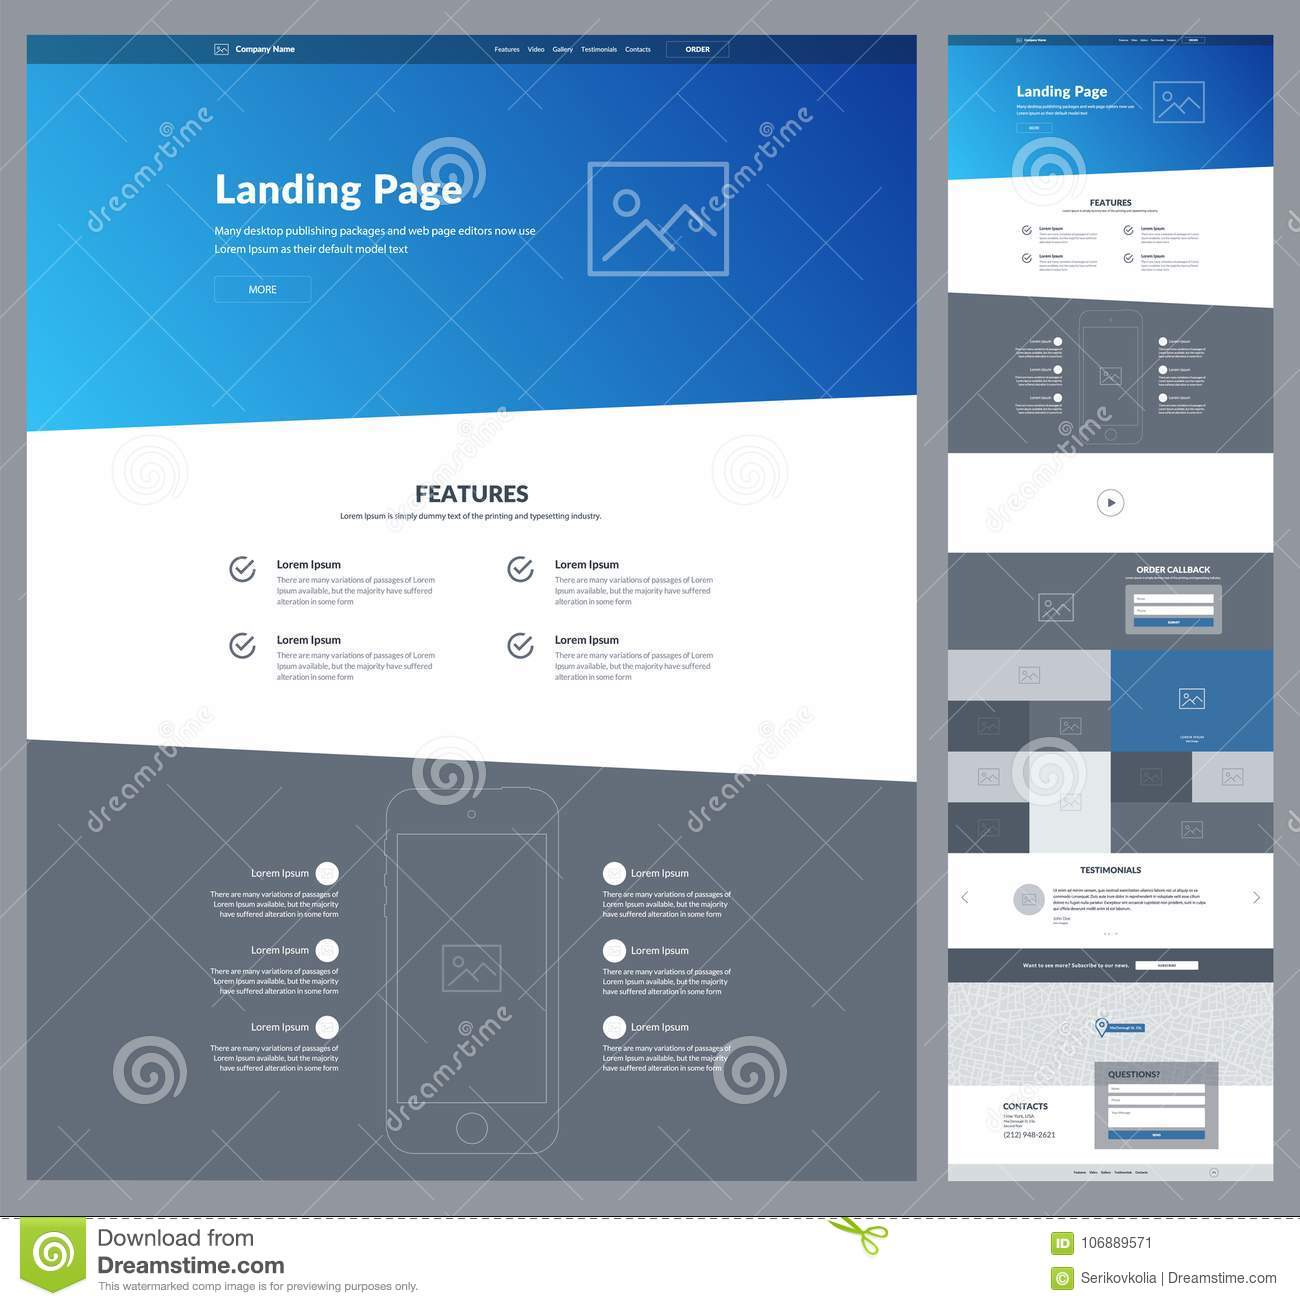 One page website design template for your business. Landing page wireframe. Ux ui website design. Flat modern responsive design.